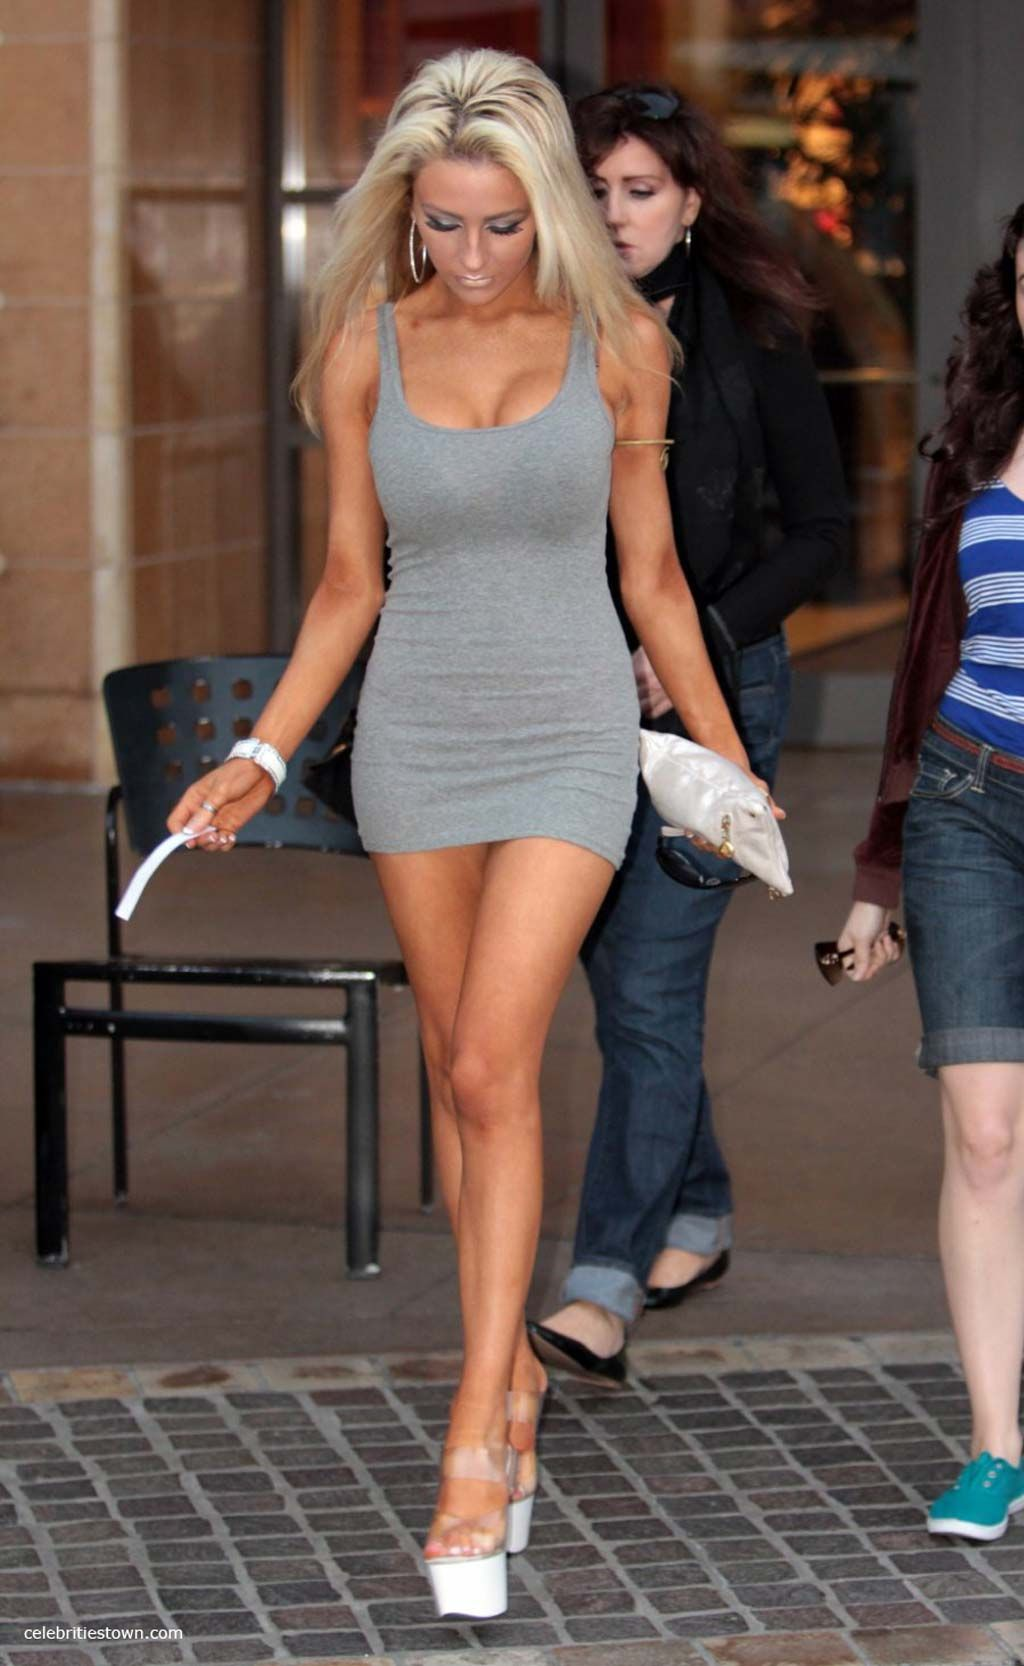 Micro Mini Skirts Public | Courtney Stodden in Shopping Center ...